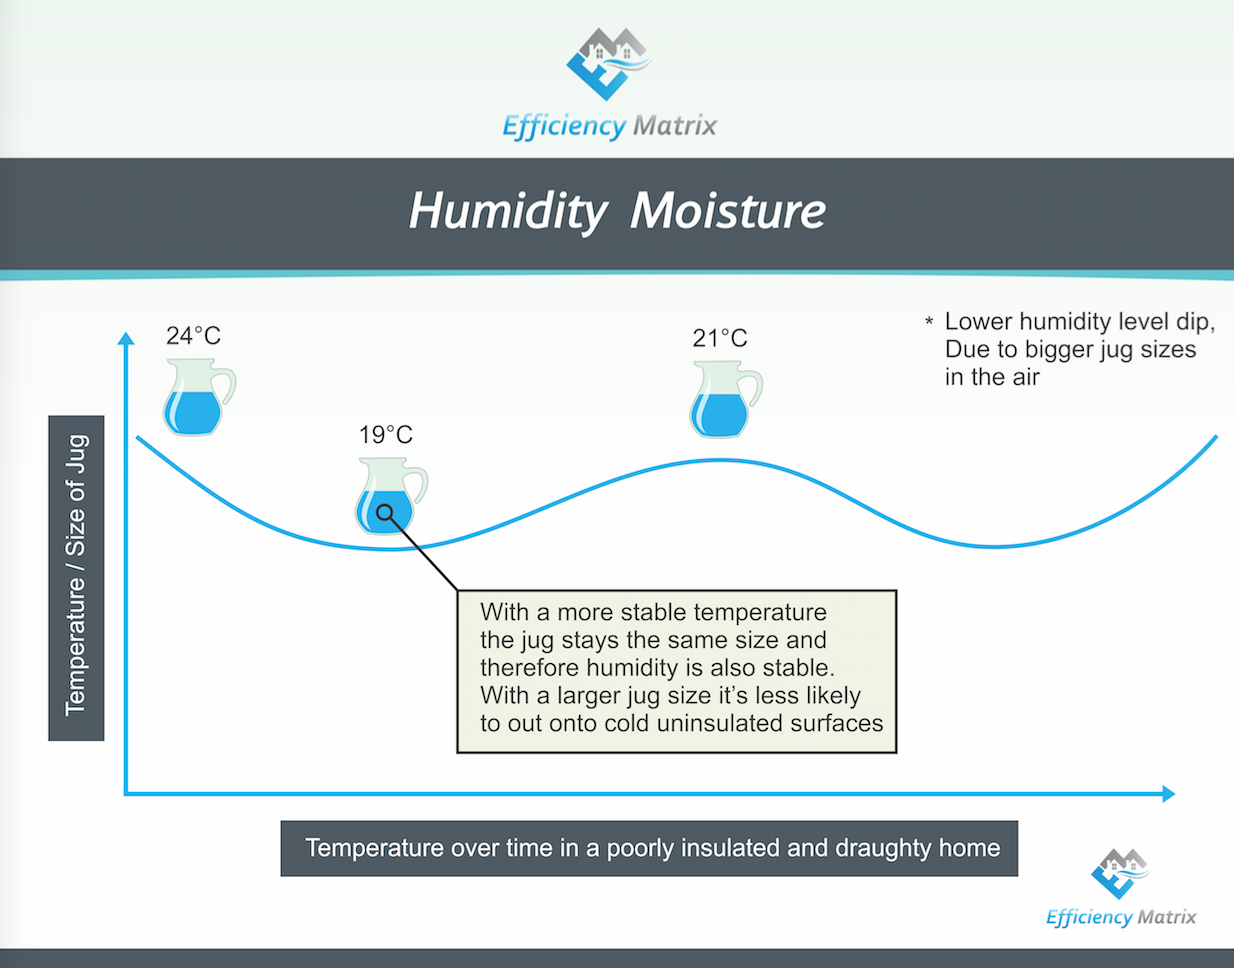 About Moisture and Humidity